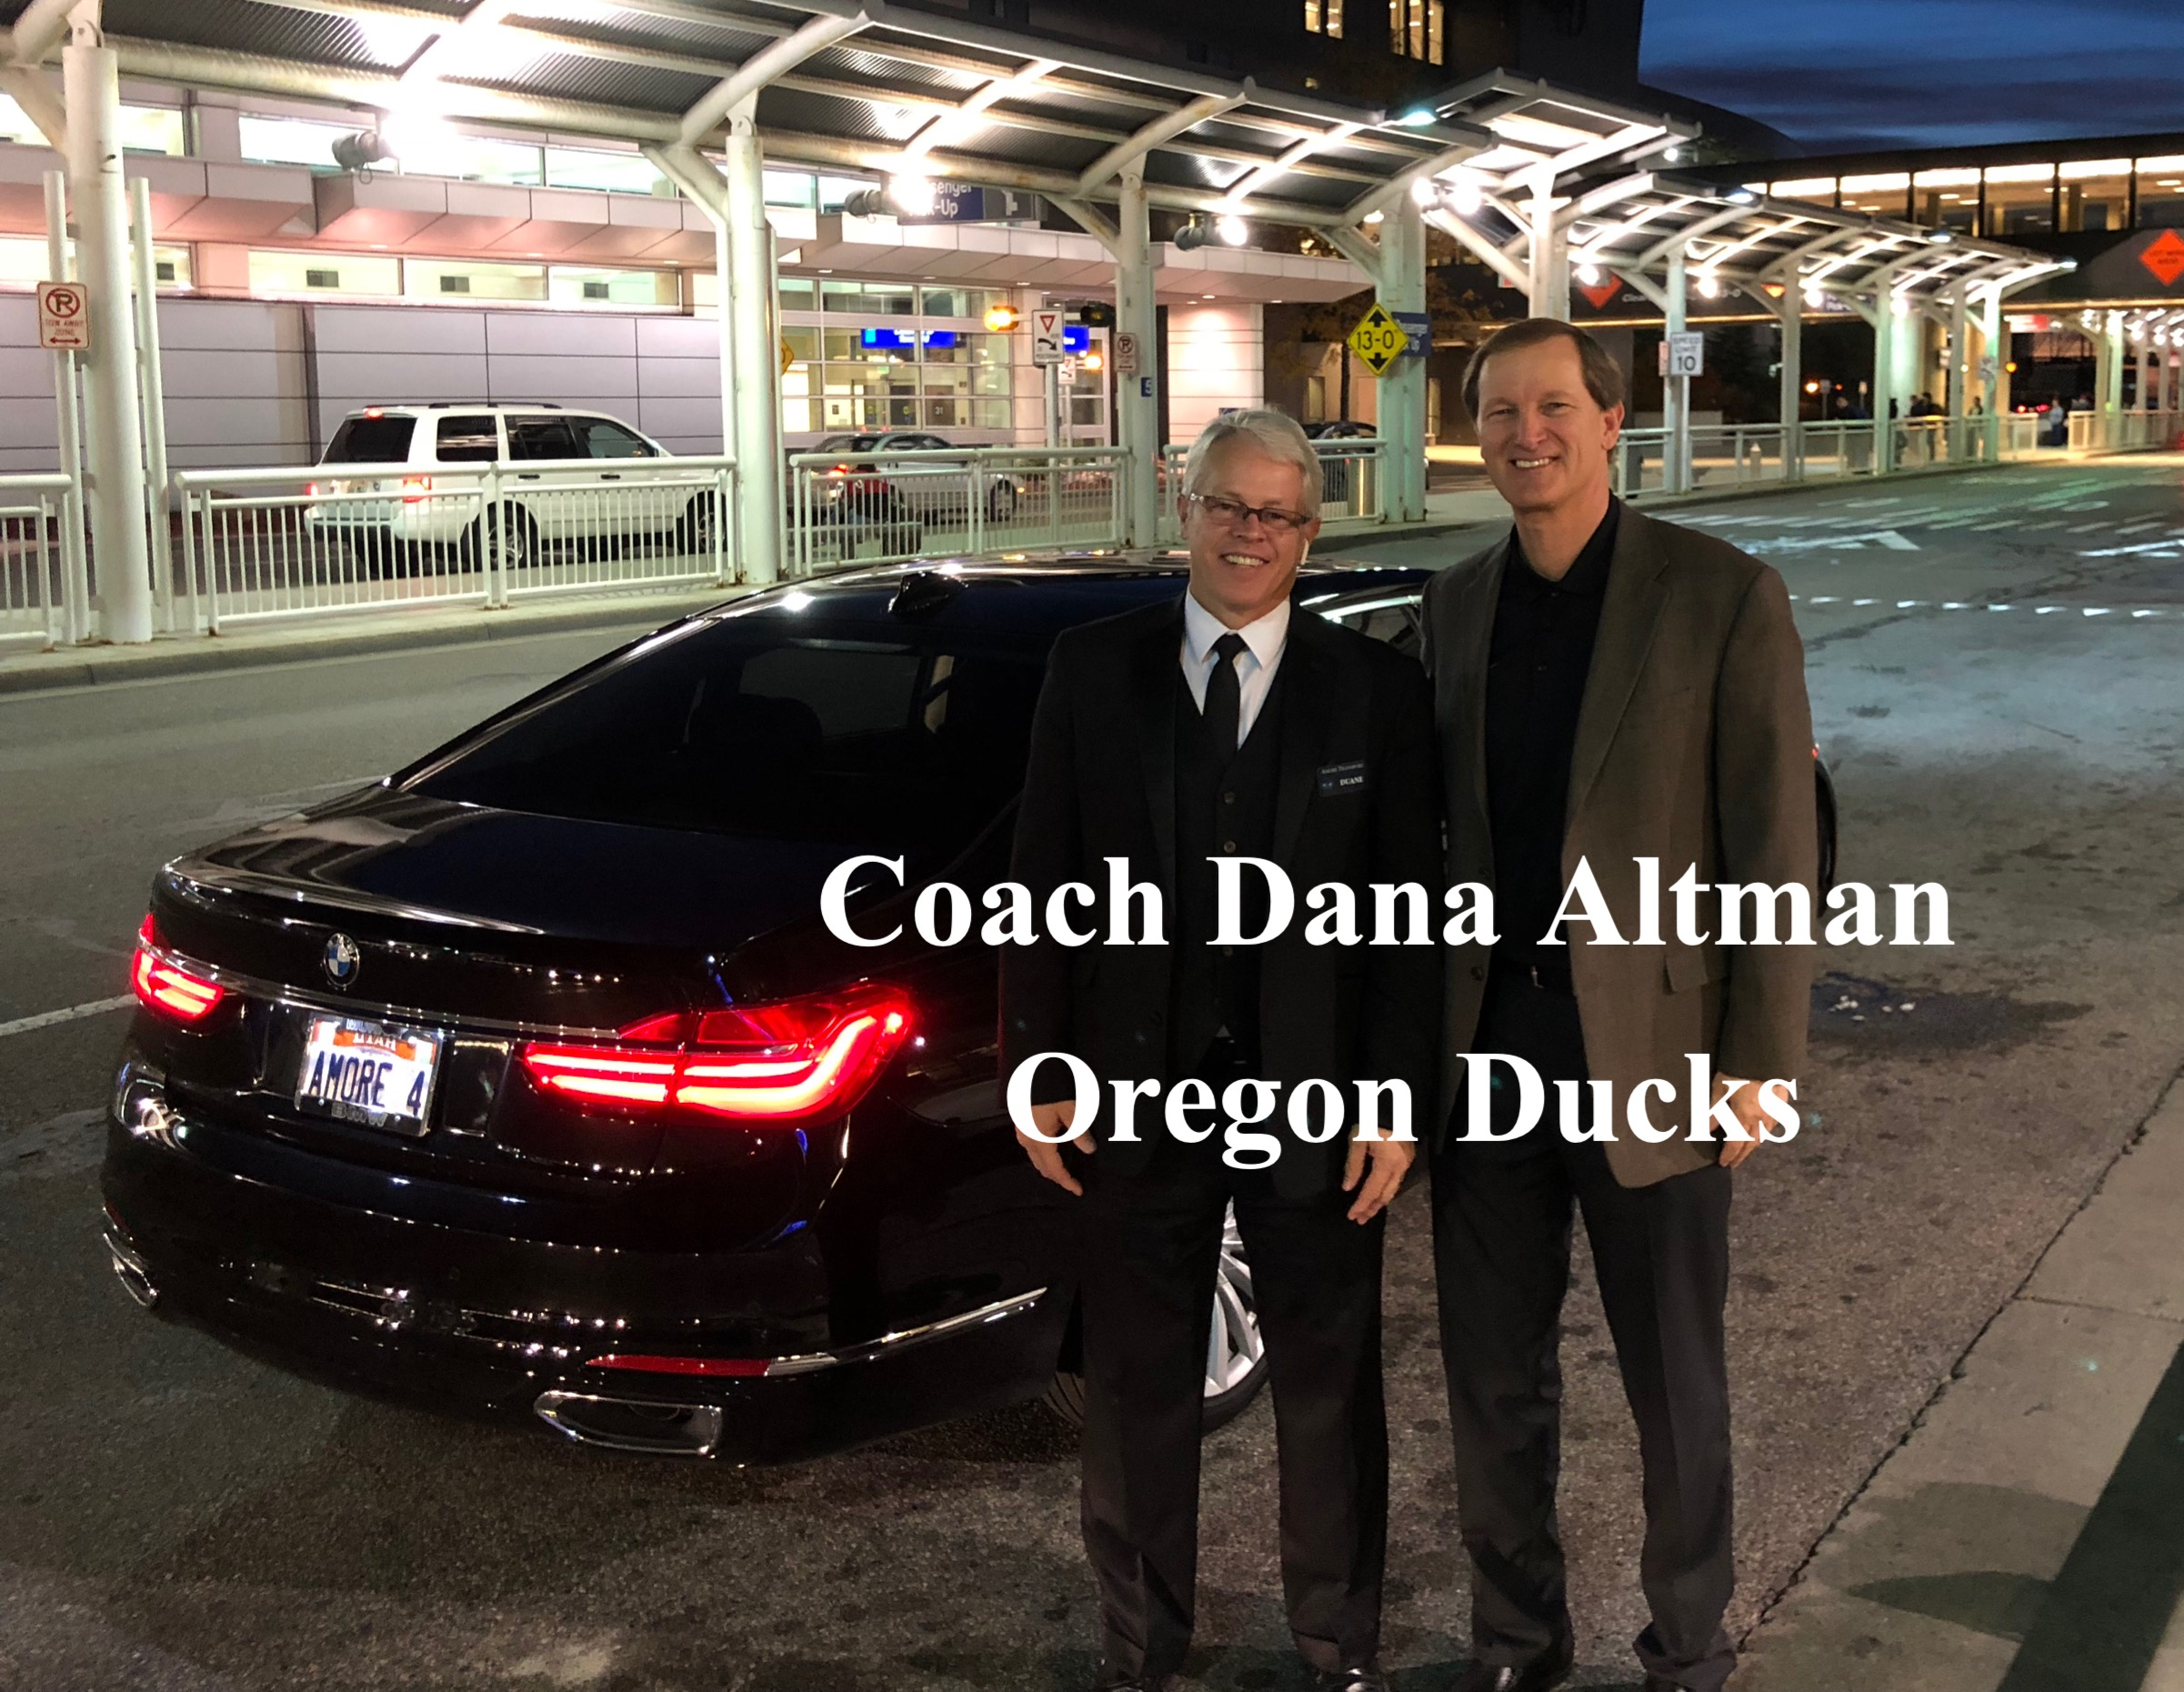 Coach Dana Altman Oregon Ducks Amore Tra